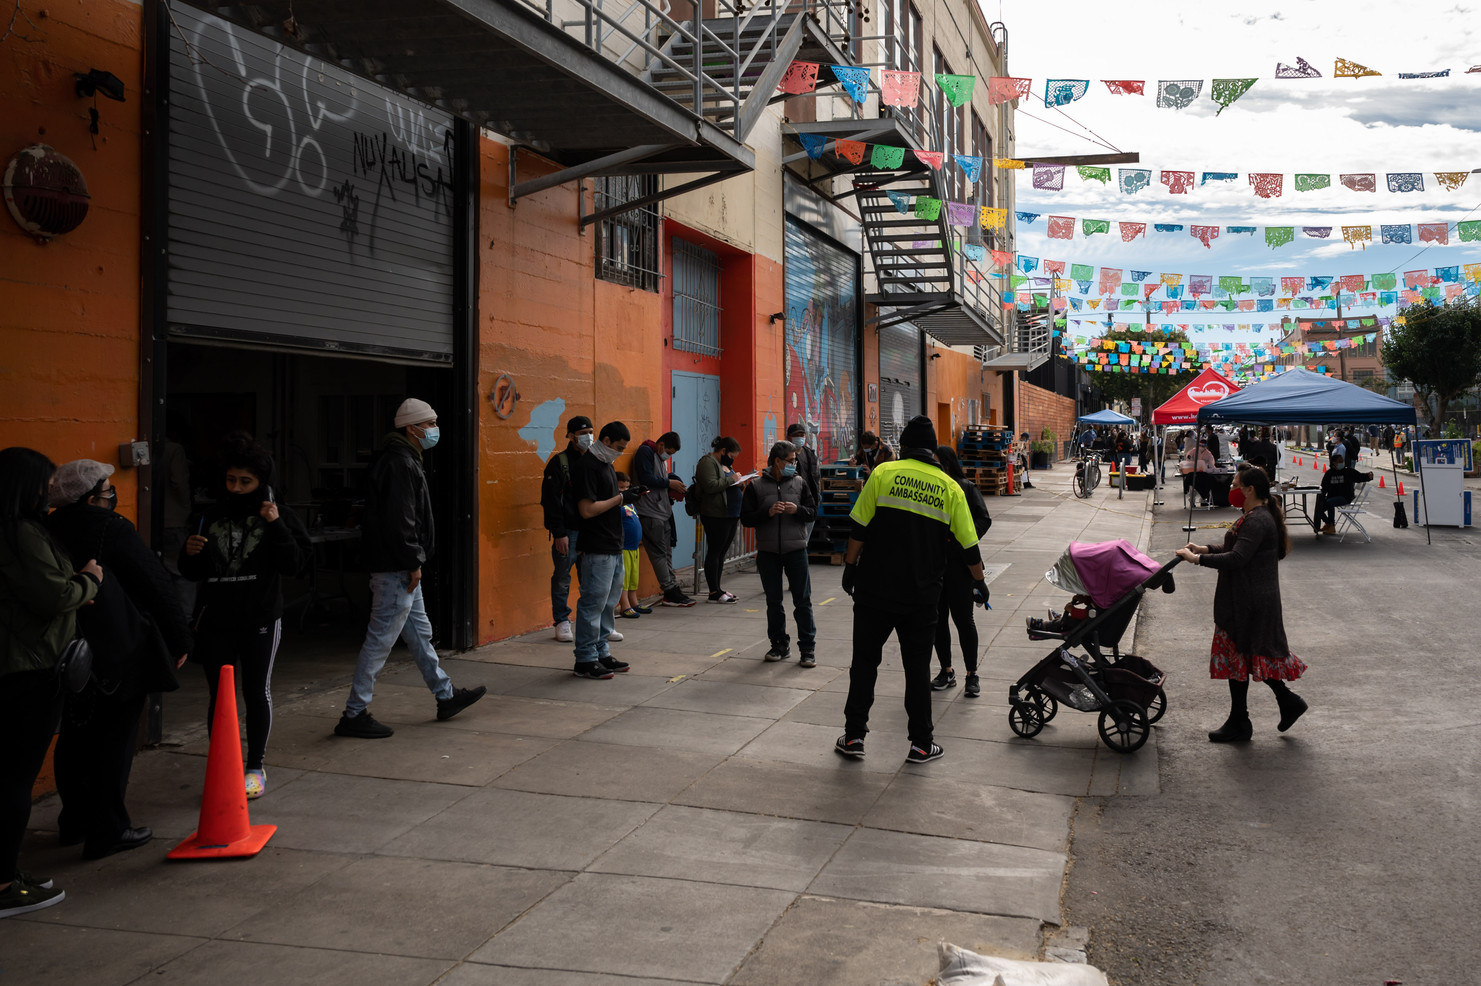 San Francisco Mission community members line up outside of the Latino Task Force Mission Resource Hub. Four days a week, the Mission Resource Hub provides free low barrier testing, vaccination registration, food distribution, and essential services such as employment and housing resources for hard hit community members.